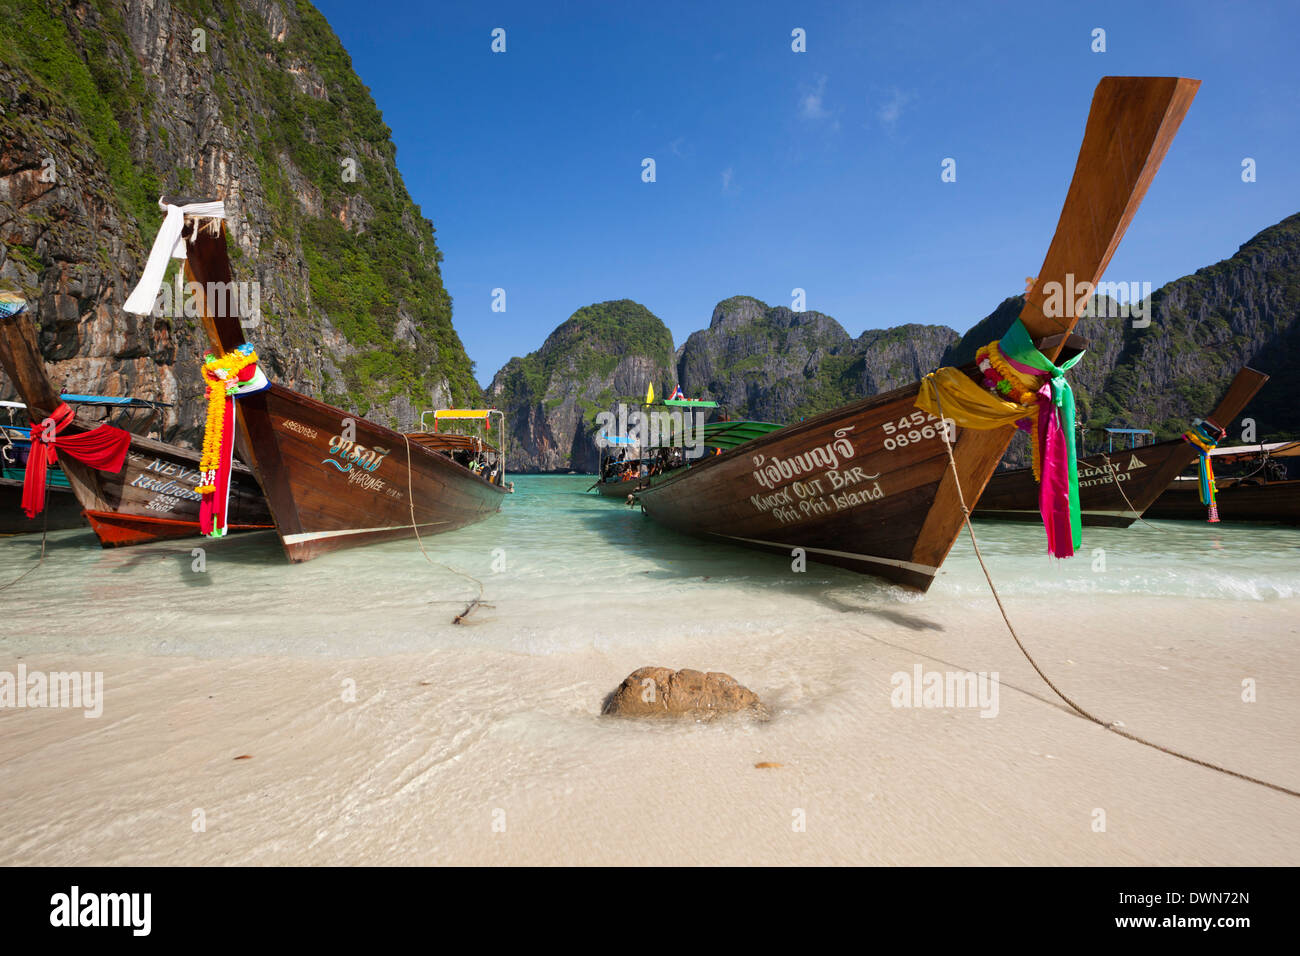 Maya Bay with long-tail boats, Phi Phi Lay Island, Krabi Province, Thailand, Southeast Asia, Asia - Stock Image